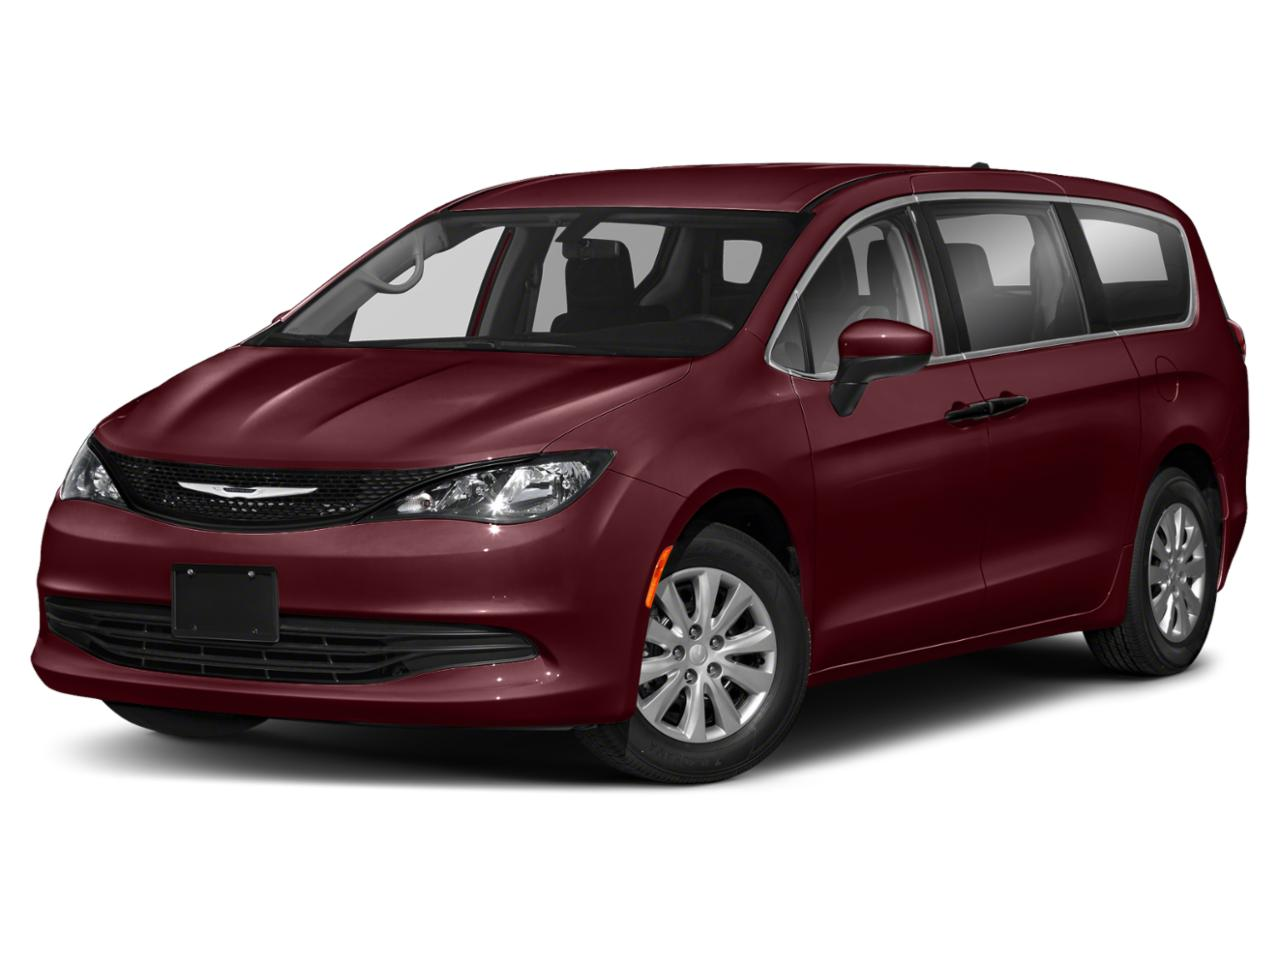 2020 Chrysler Voyager Vehicle Photo in Clarksville, MD 21029